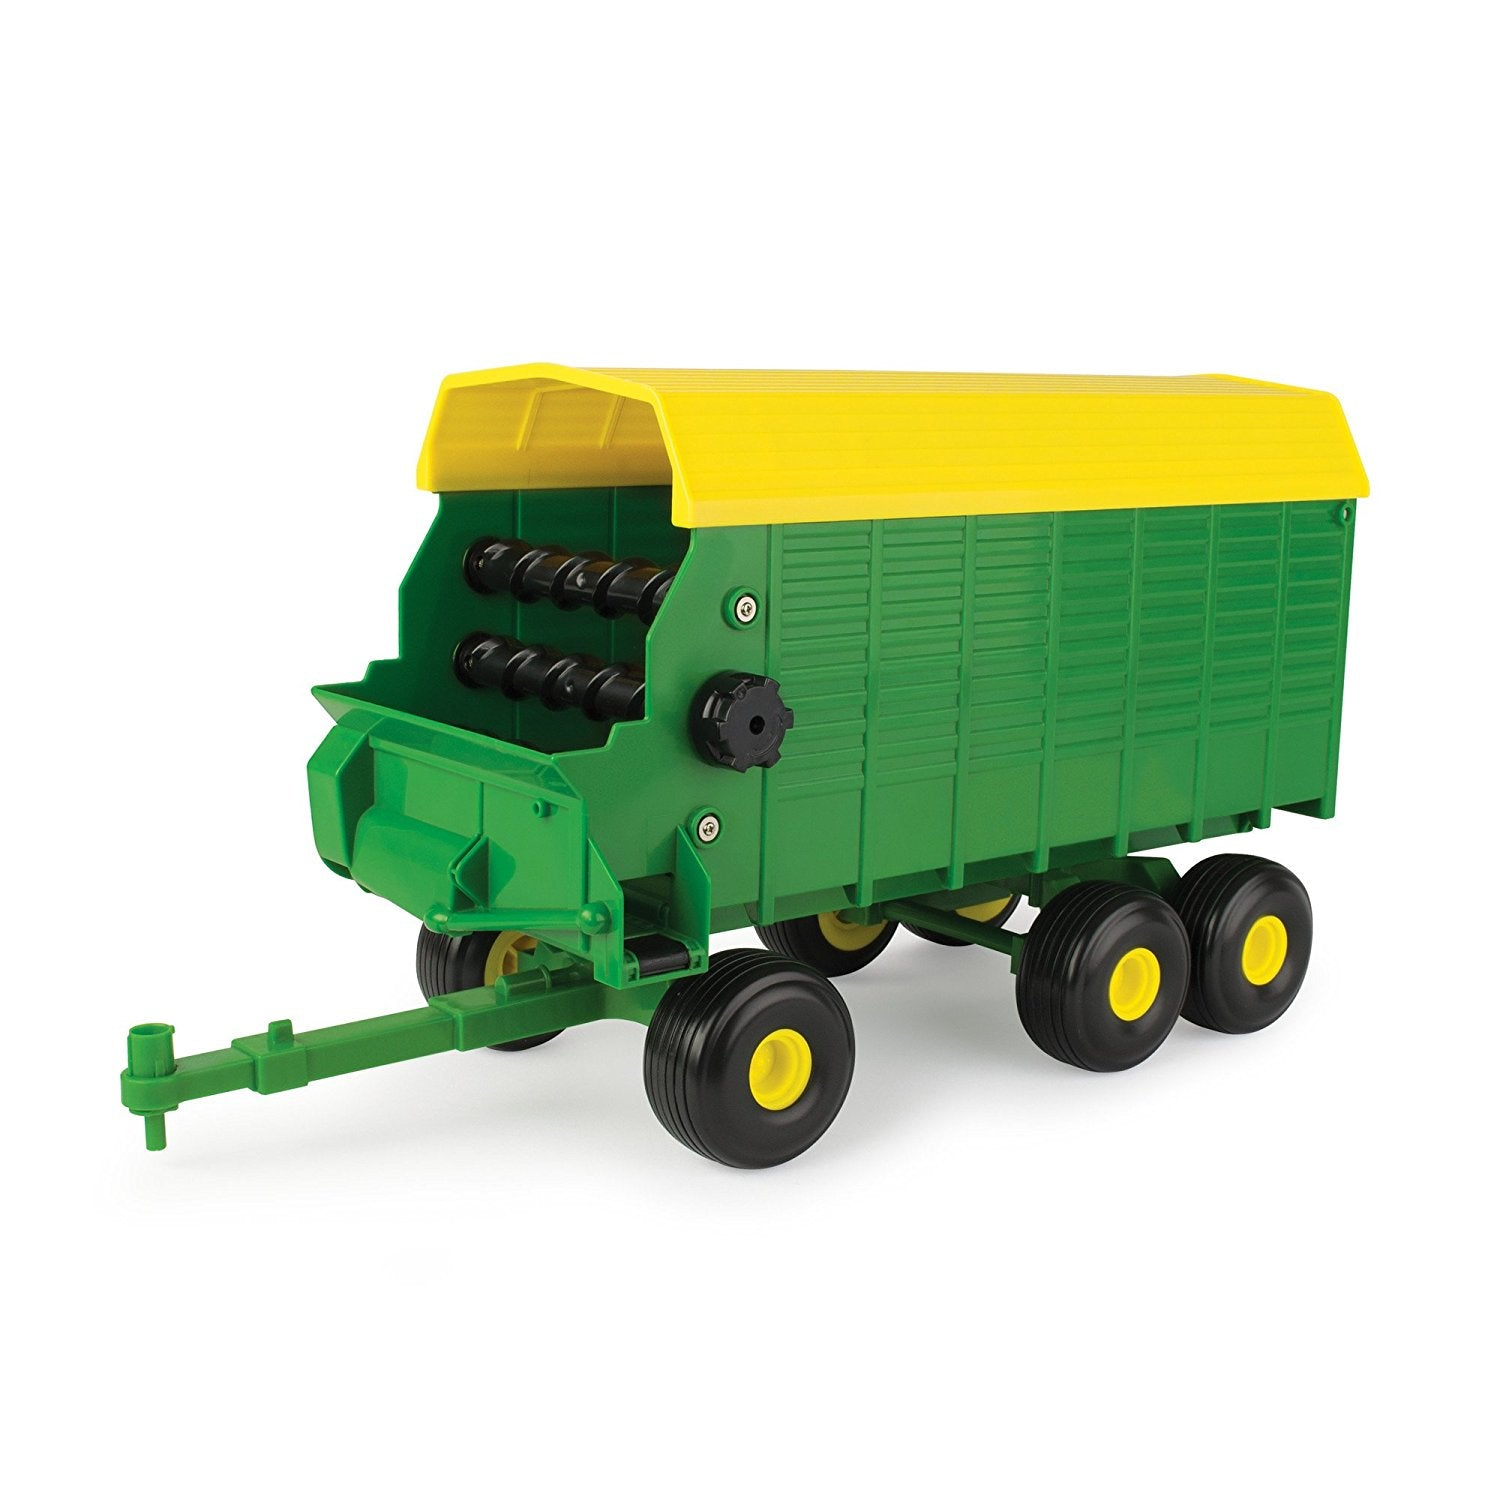 John Deere Big Farm Forage Wagon Toy - LP67325